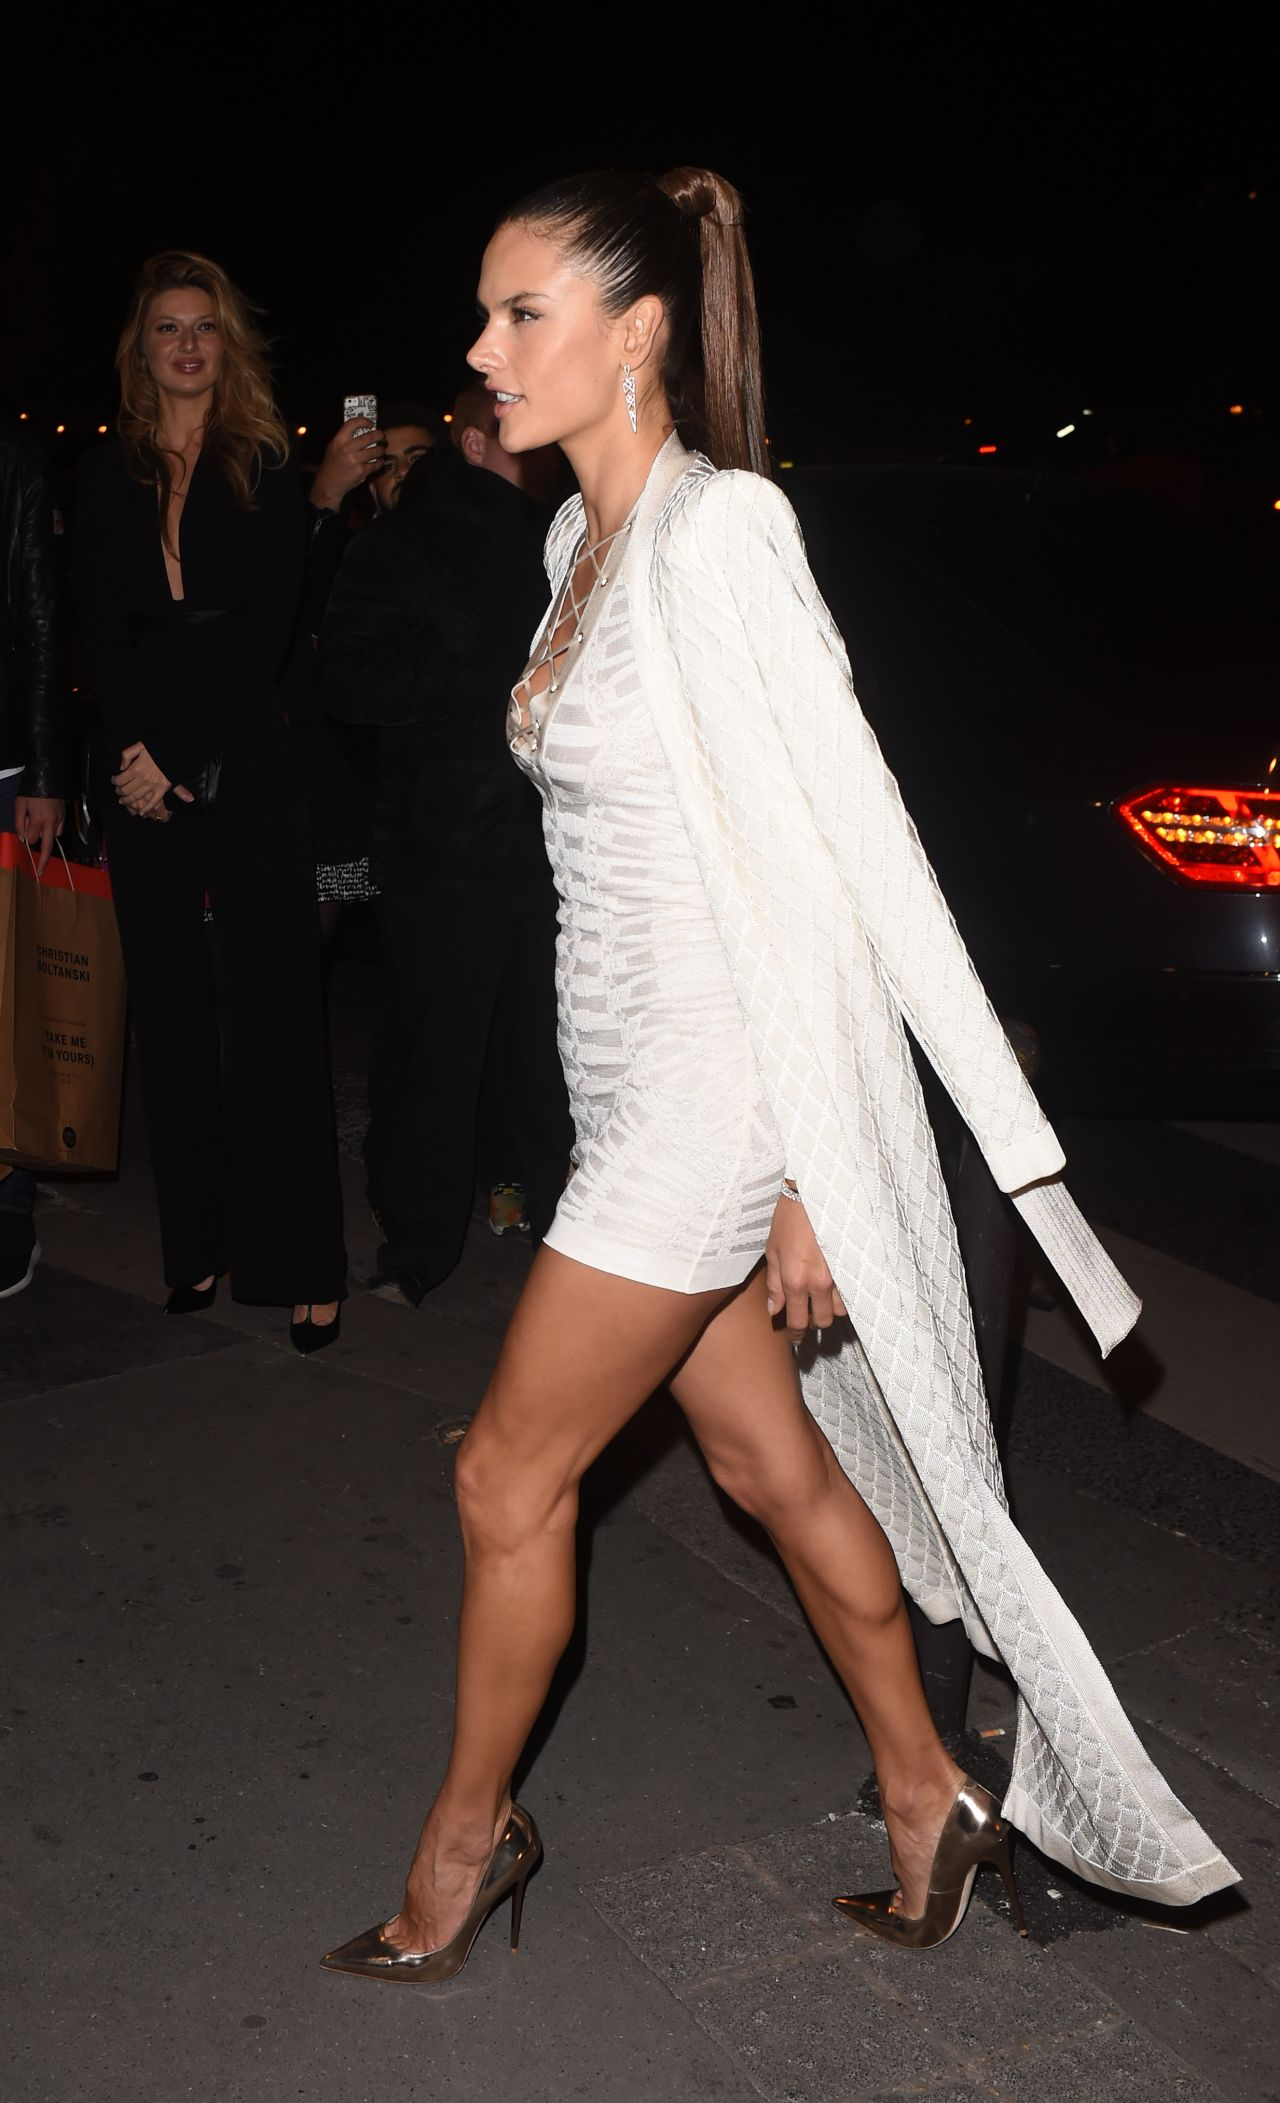 alessandra-ambrosio-balmain-show-after-party-in-paris-october-2015_7